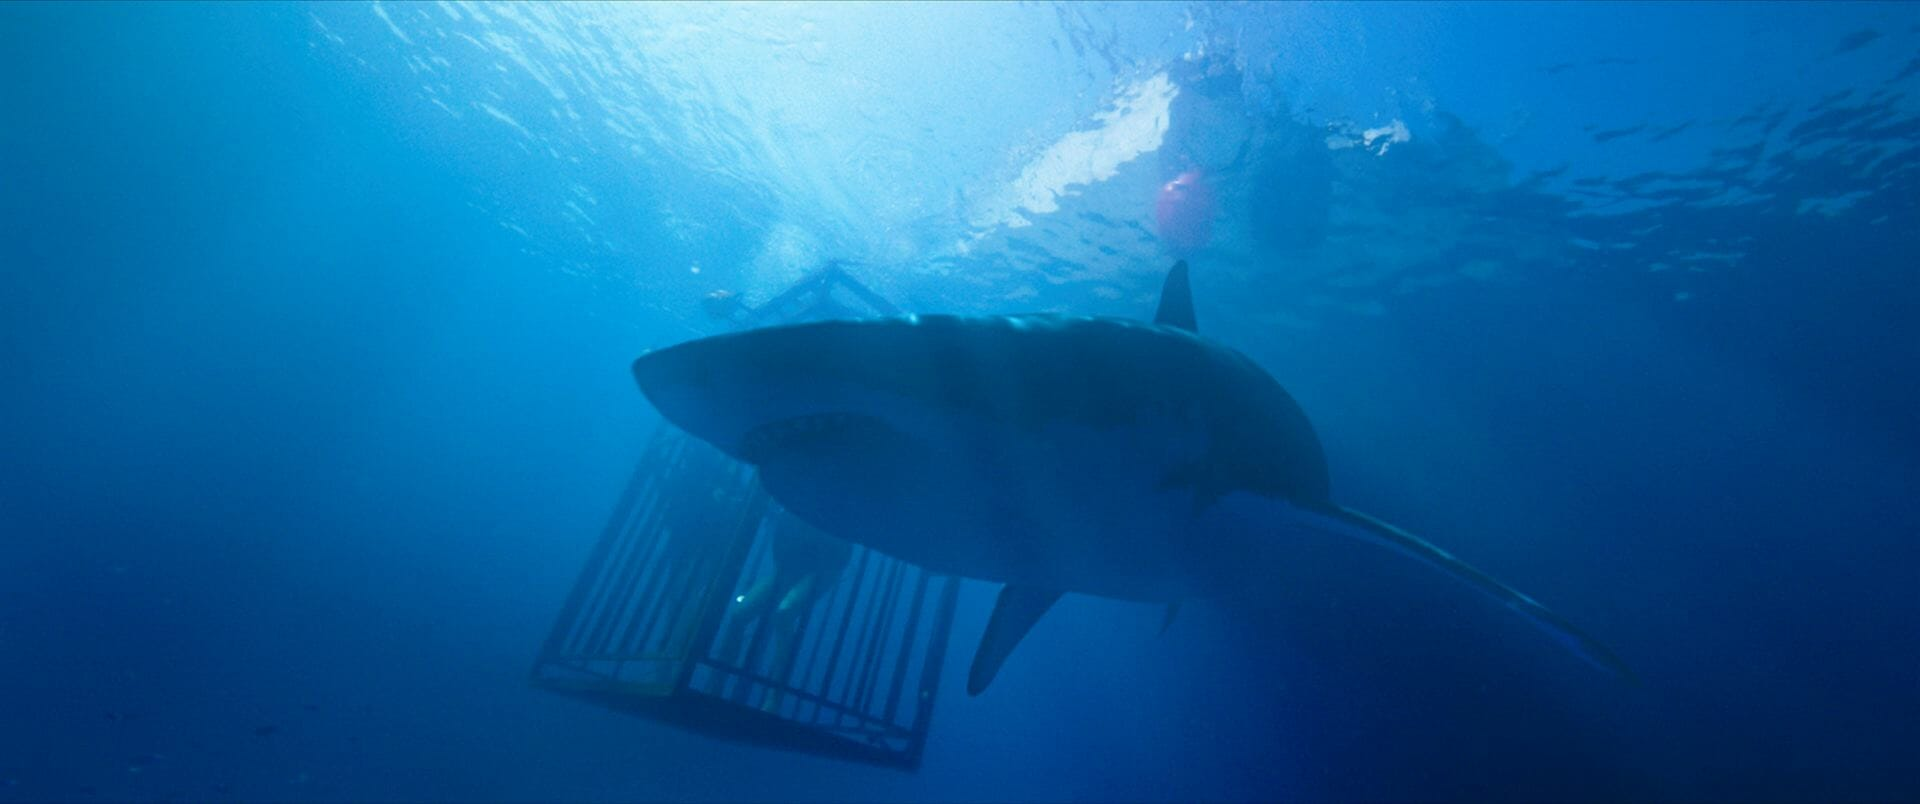 Critique 47 Meters Down On Rembobine